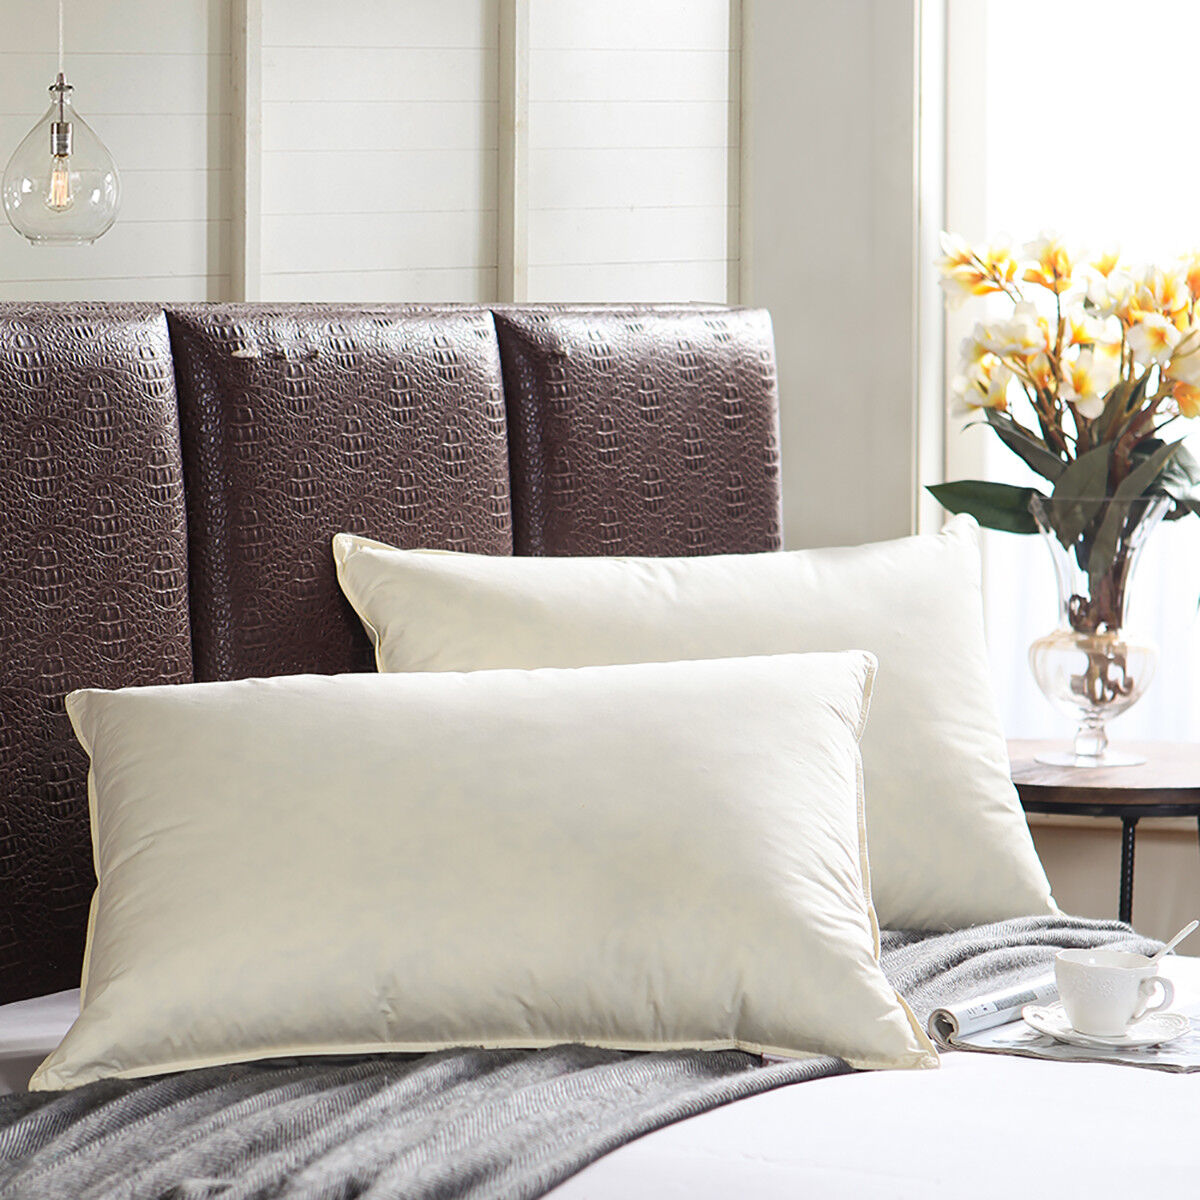 1000TC 100% Egyptian Cotton Down Feather Pillows Queen Size